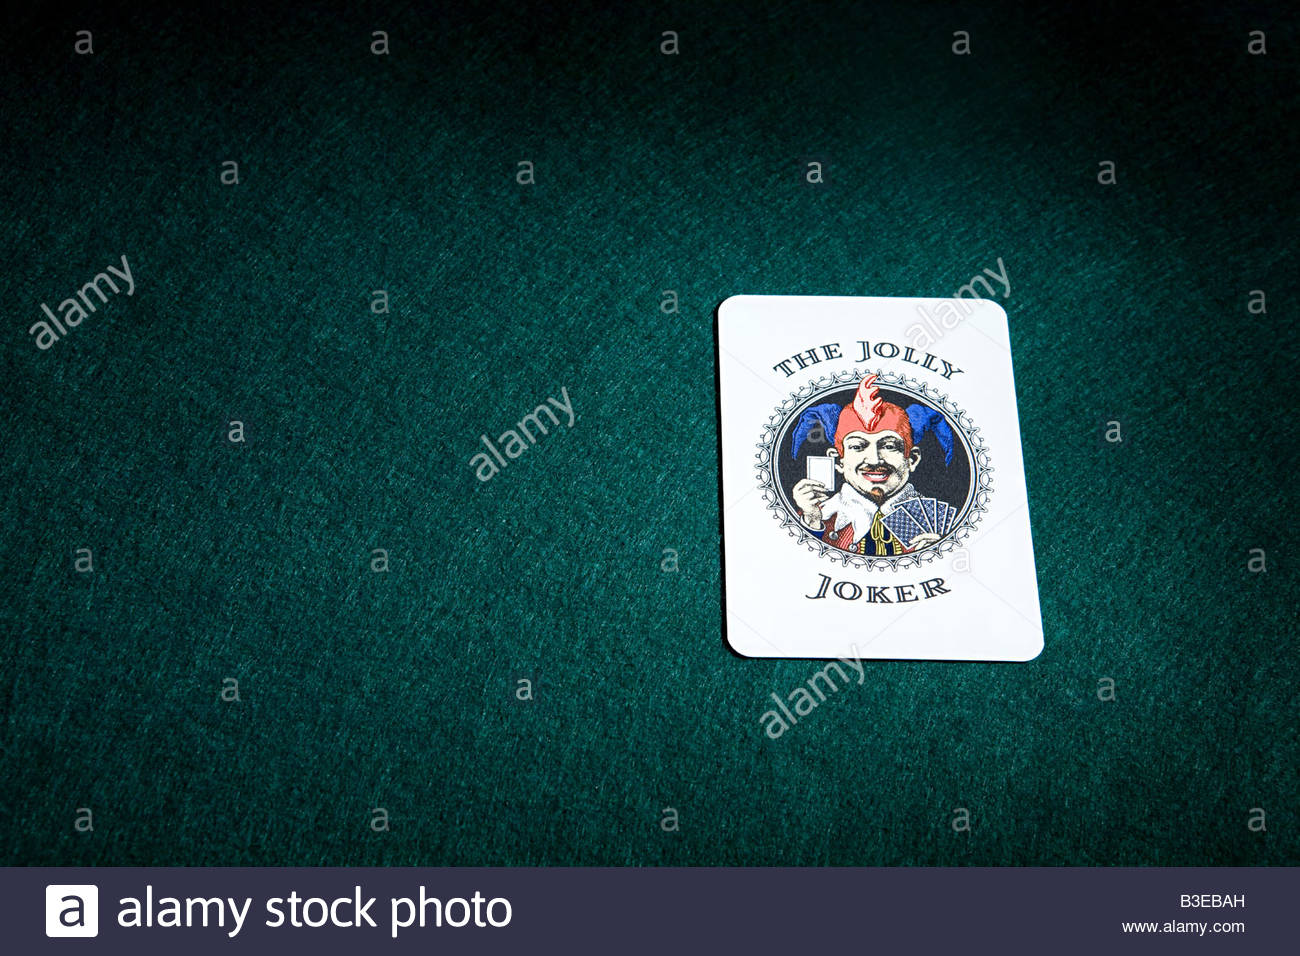 A joker playing card - Stock Image